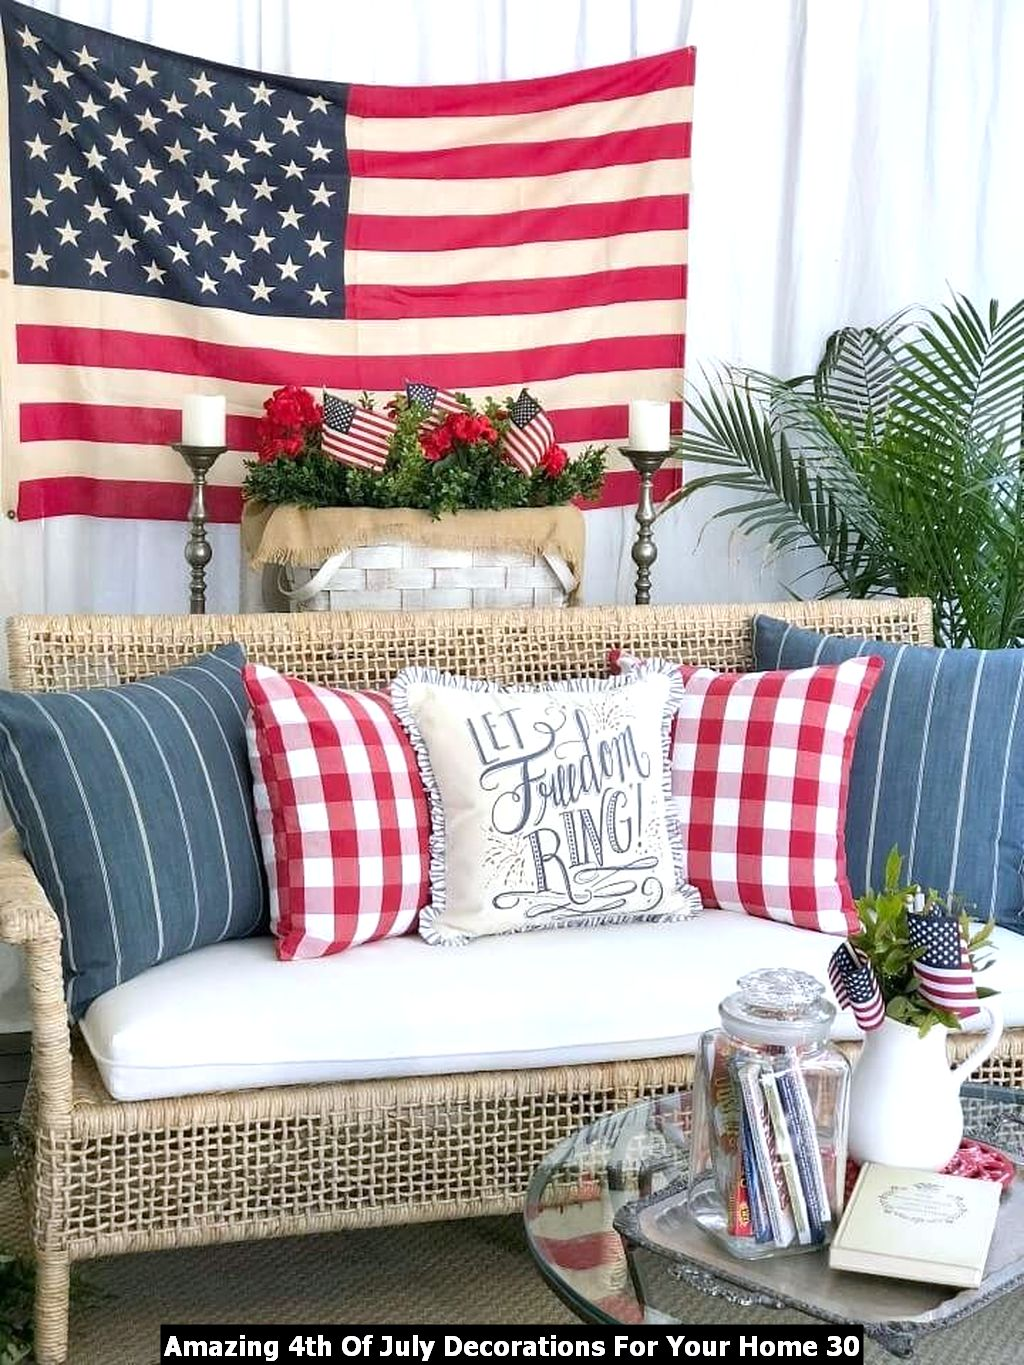 Amazing 4th Of July Decorations For Your Home 30